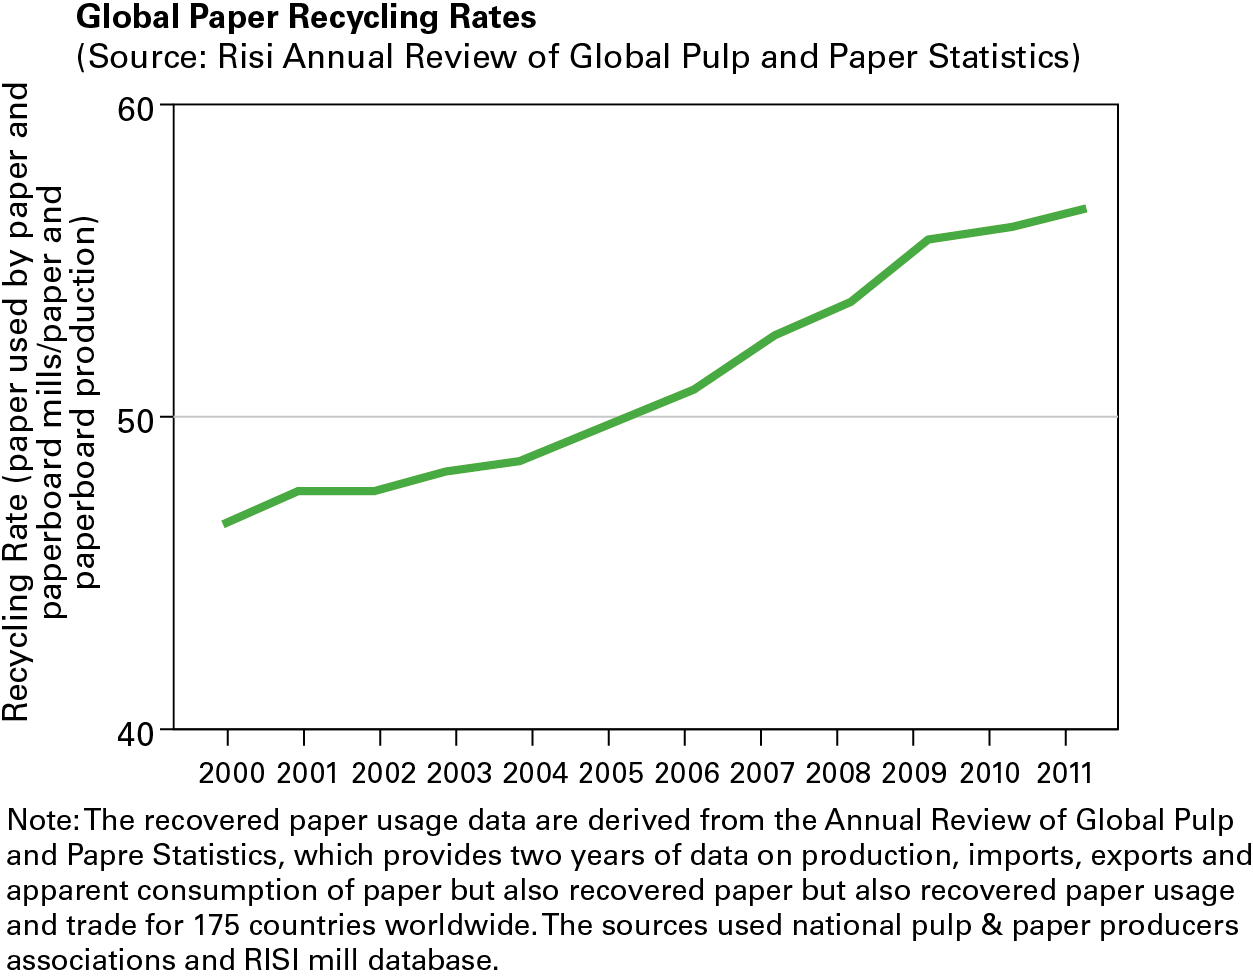 annual review of global pulp and paper statistics